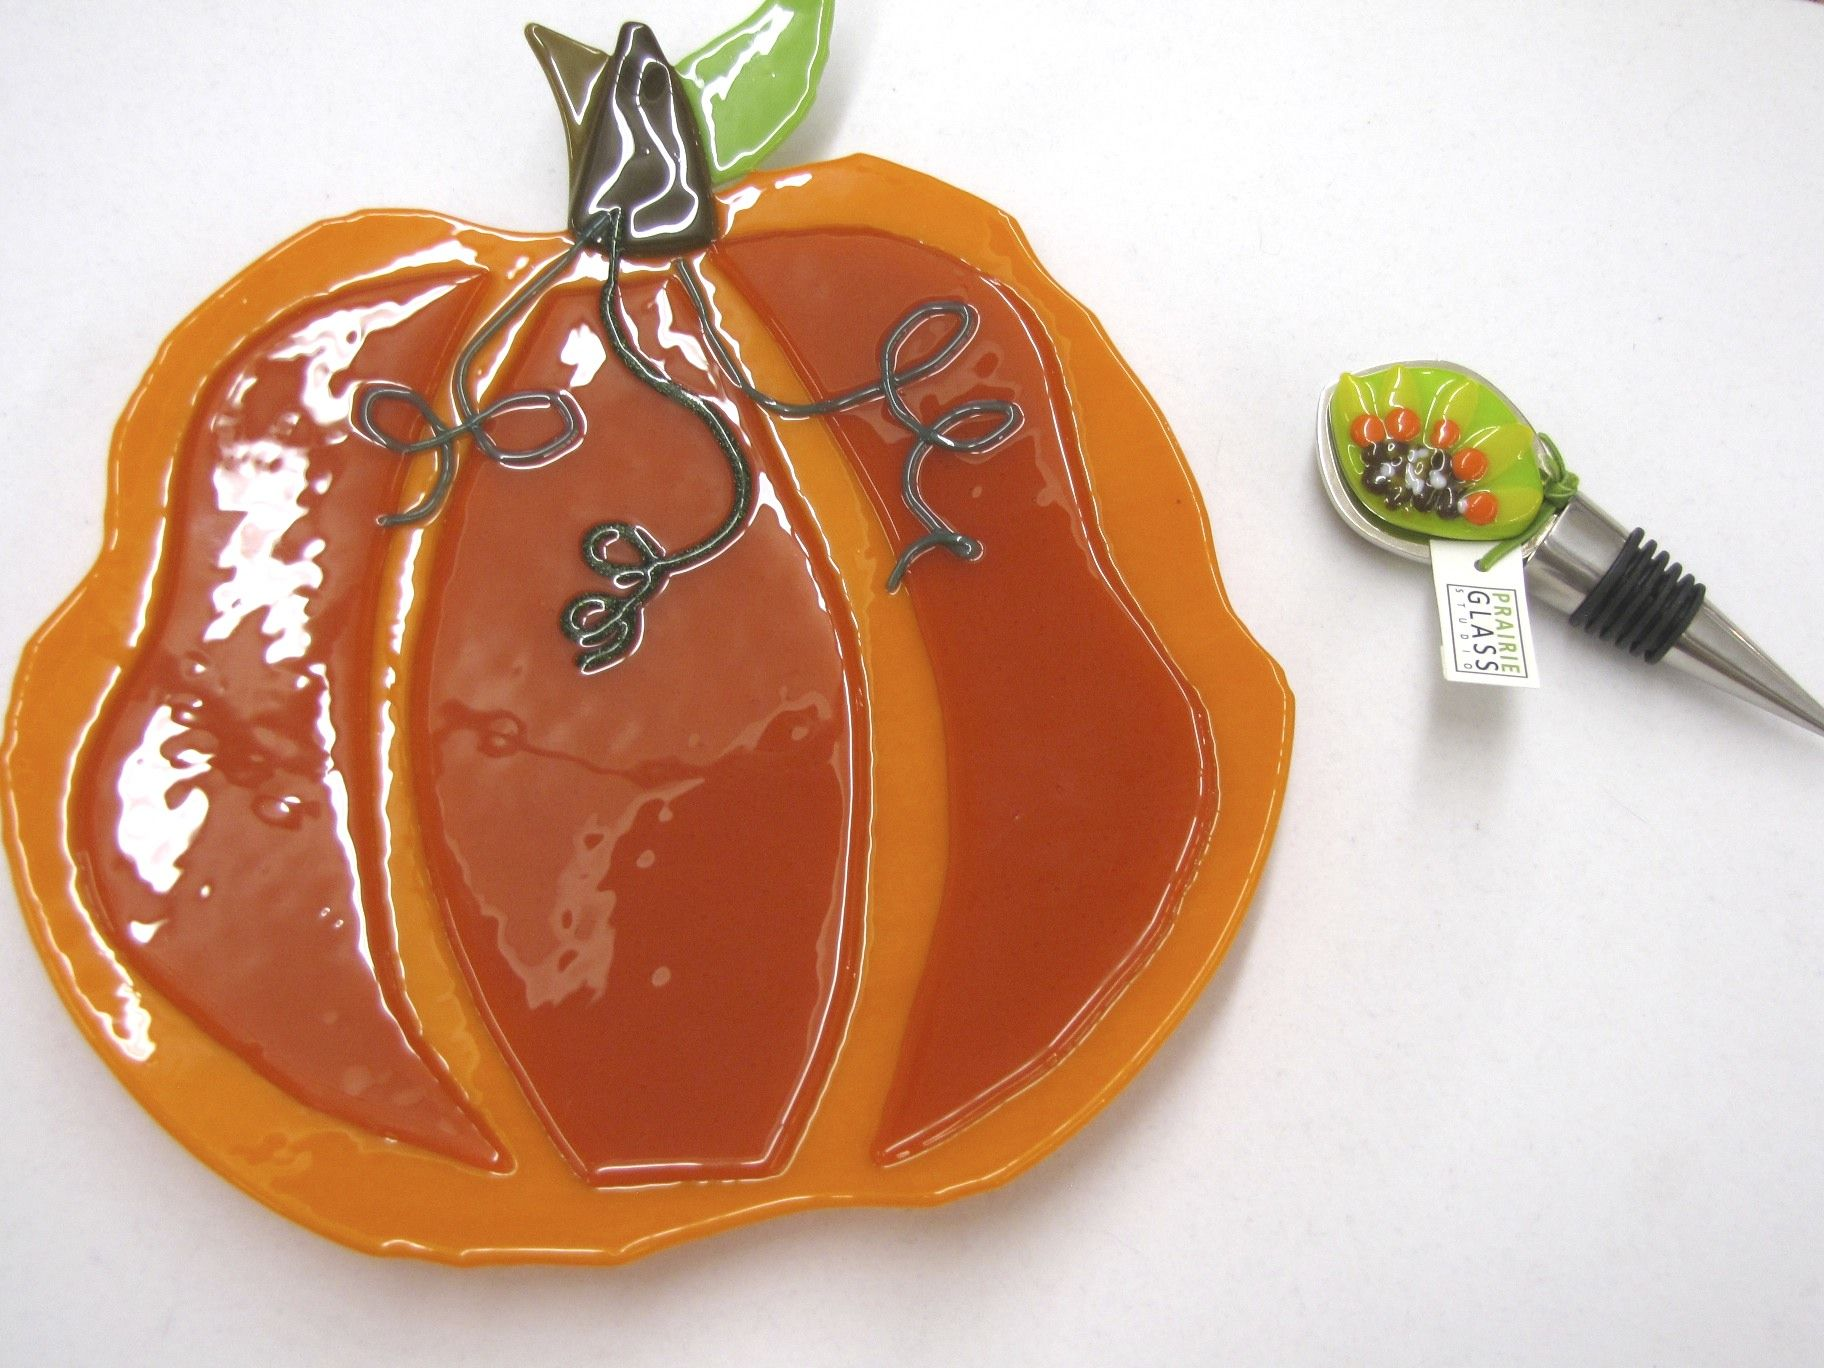 Pumpkin Dish And Sunflower Wine Stopper Made By Prairie Glass Studio In Topeka Ks Fused Glass Fused Glass Art Glass Pumpkins